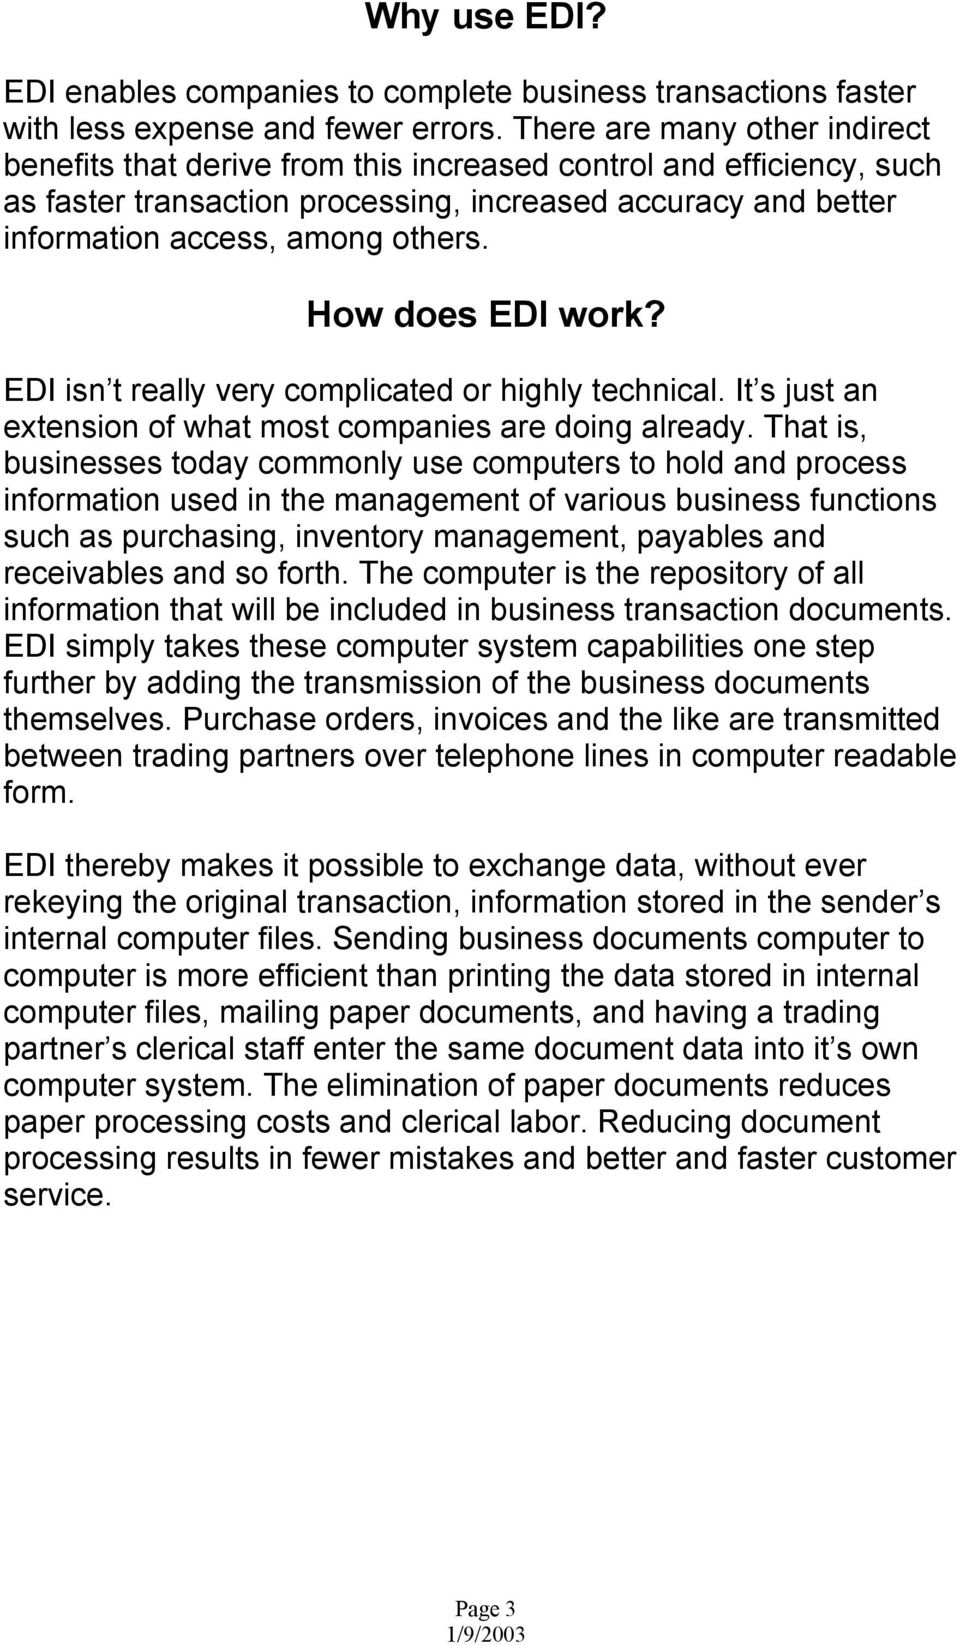 How does EDI work? EDI isn t really very complicated or highly technical. It s just an extension of what most companies are doing already.